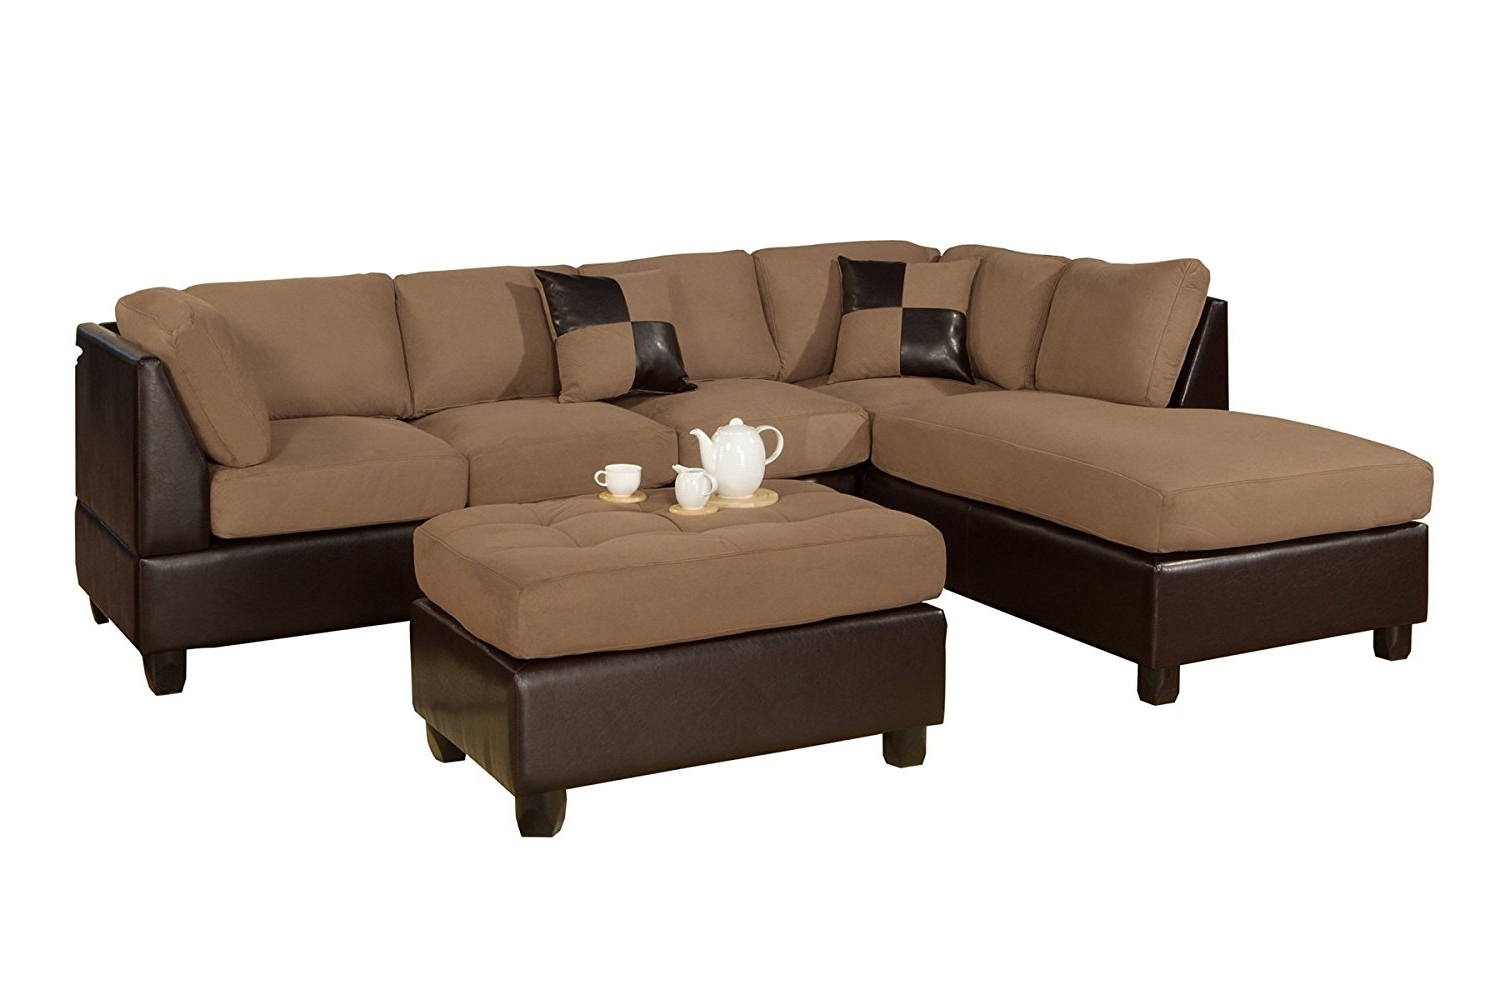 Sectional Sofas Under 1500 For Most Current Amazon: Bobkona Hungtinton Microfiber/faux Leather 3 Piece (View 14 of 15)